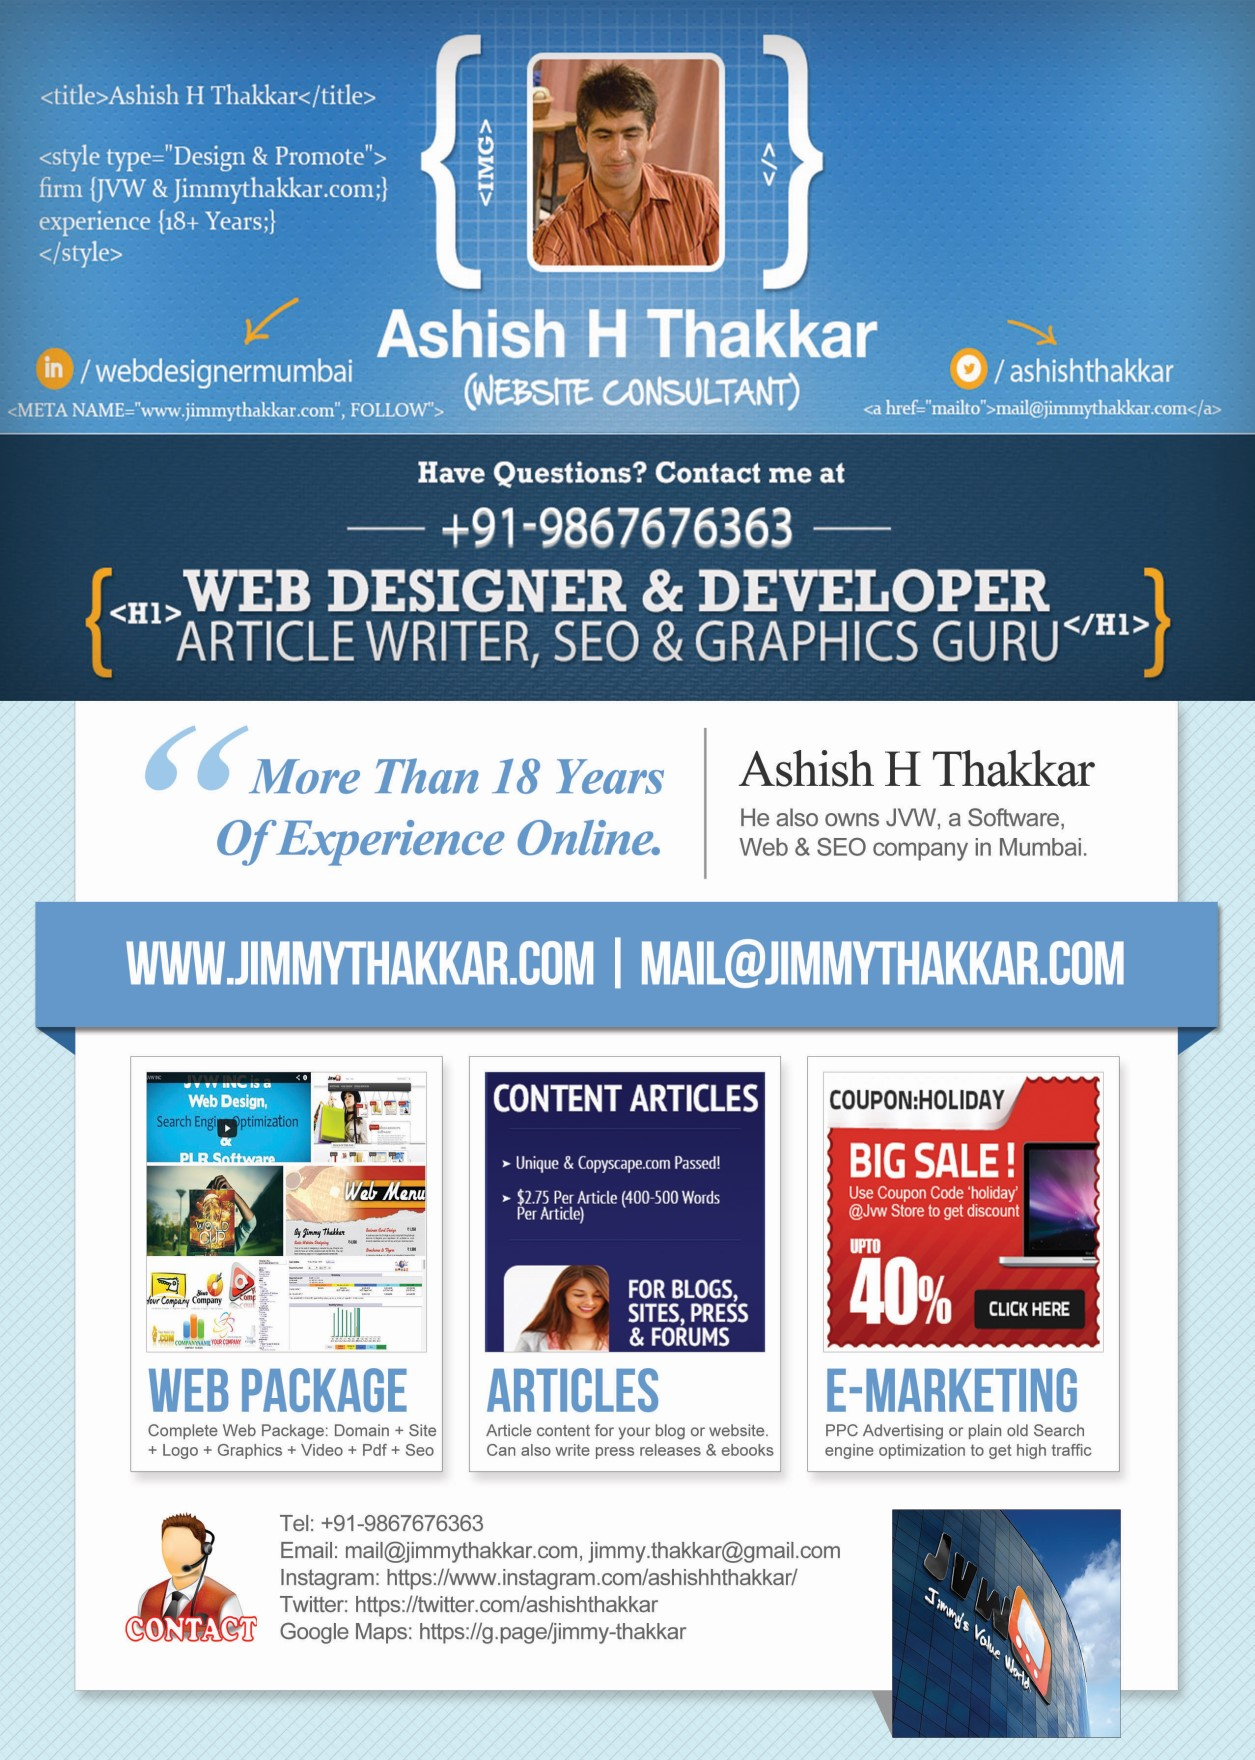 Contact Jimmy Thakkar for website development, Graphics design & Seo